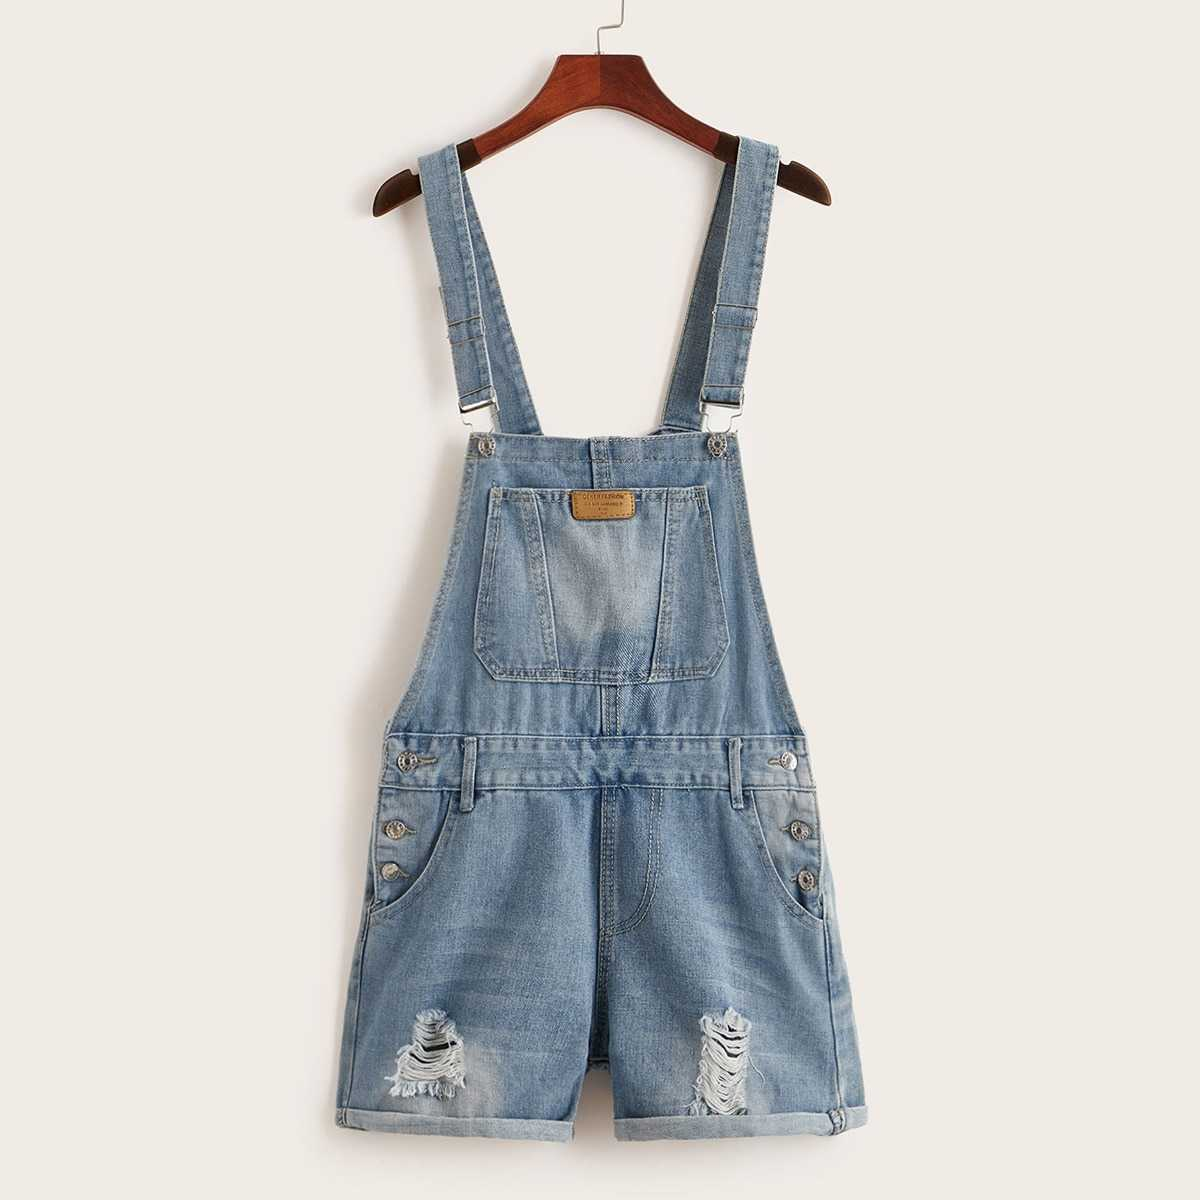 Ripped Rolled Hem Denim Overalls in Blue by ROMWE on GOOFASH